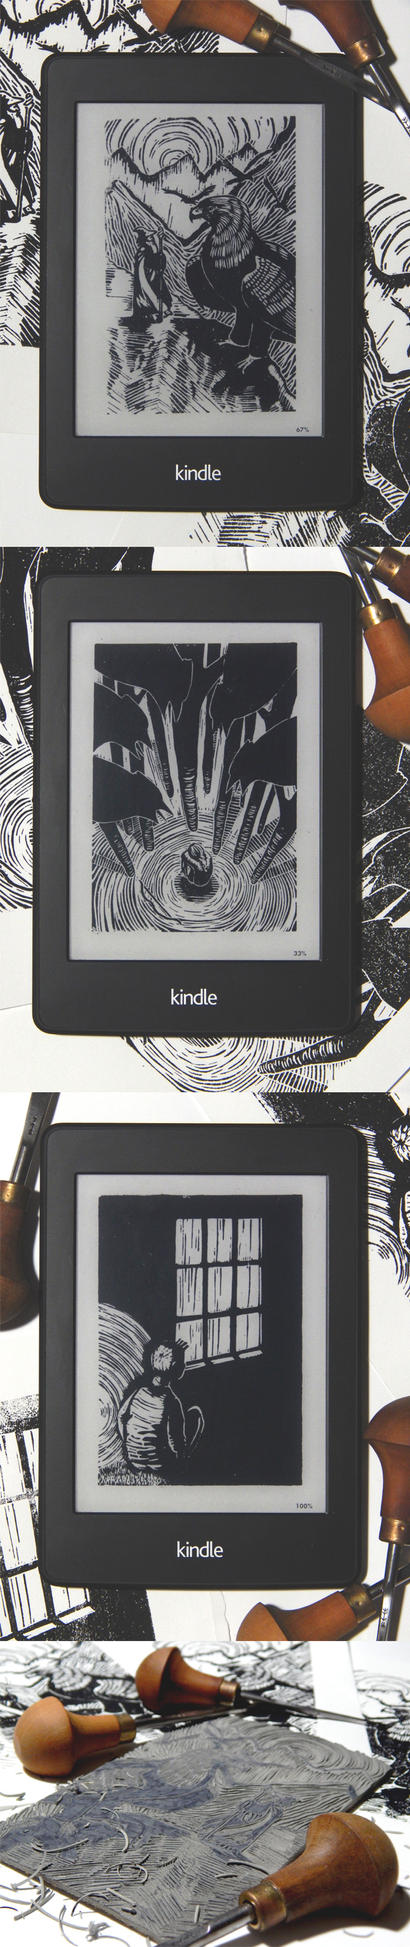 Kindle Lino Prints 2015 by Disty